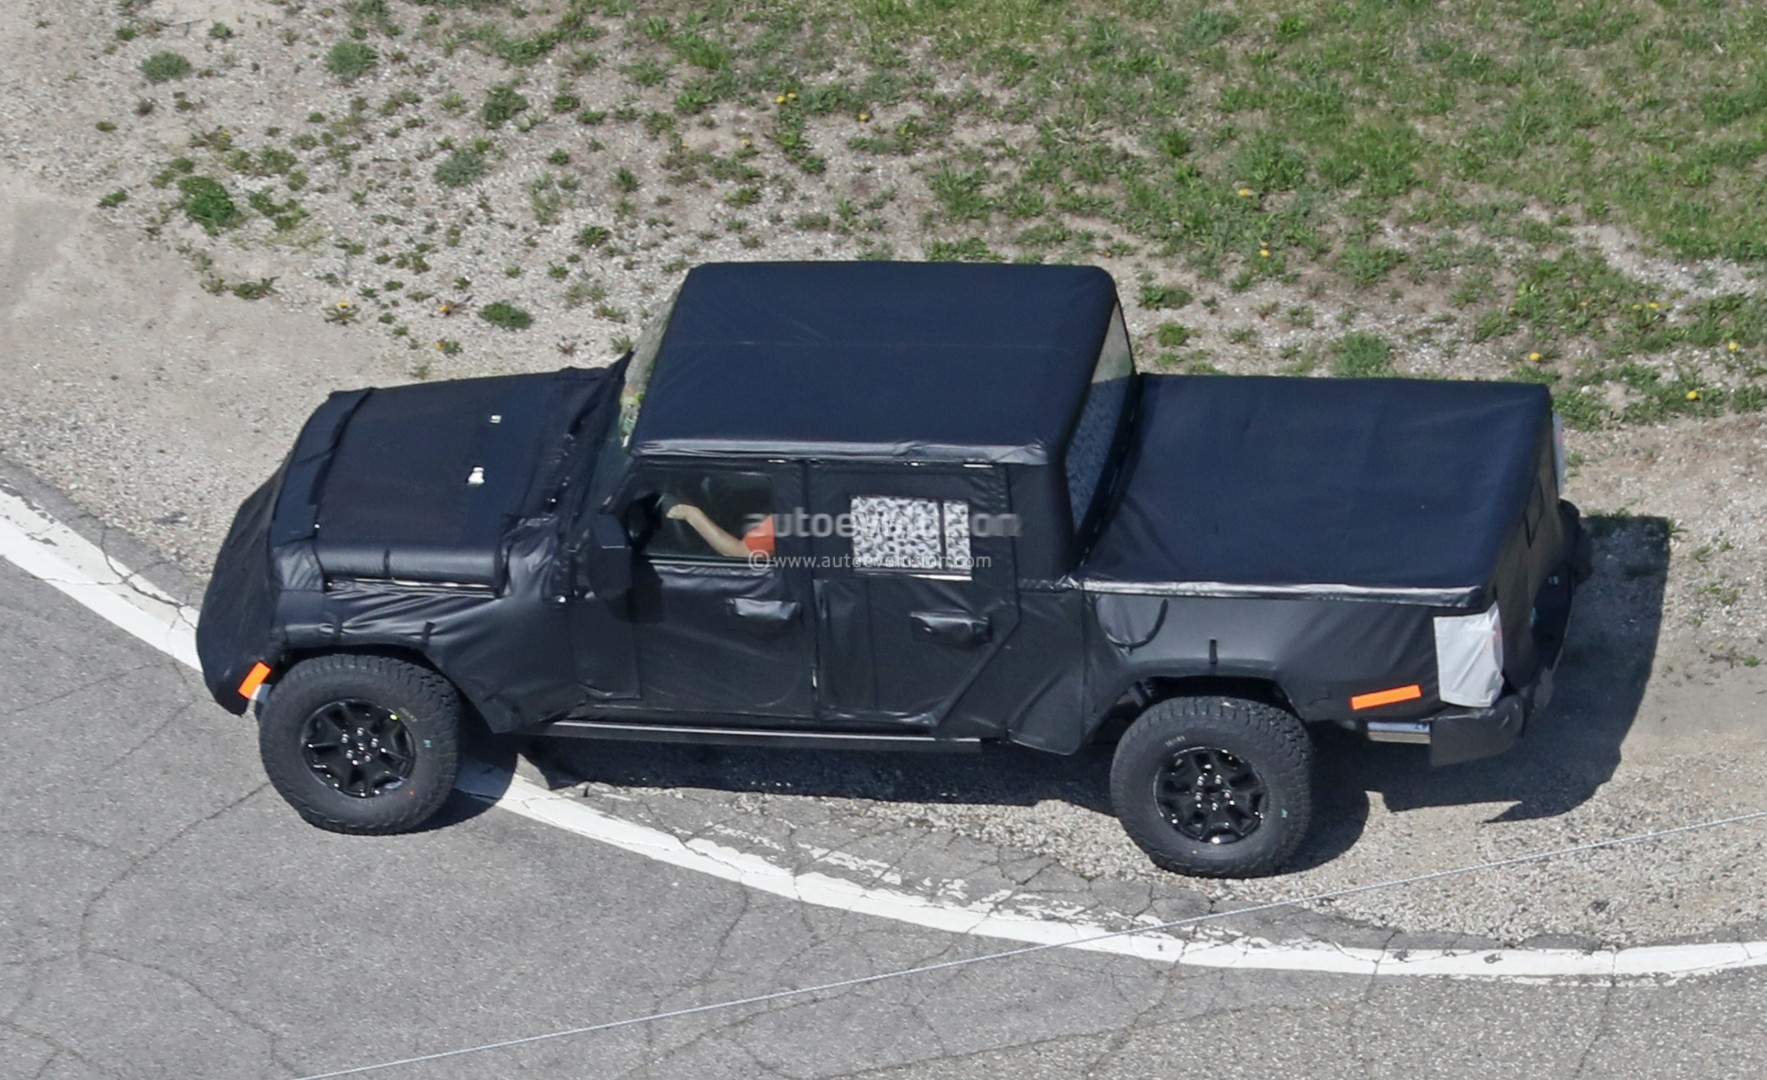 2019 Jeep Scrambler (JT) Pickup Shares Rear Suspension With Ram 1500 ...